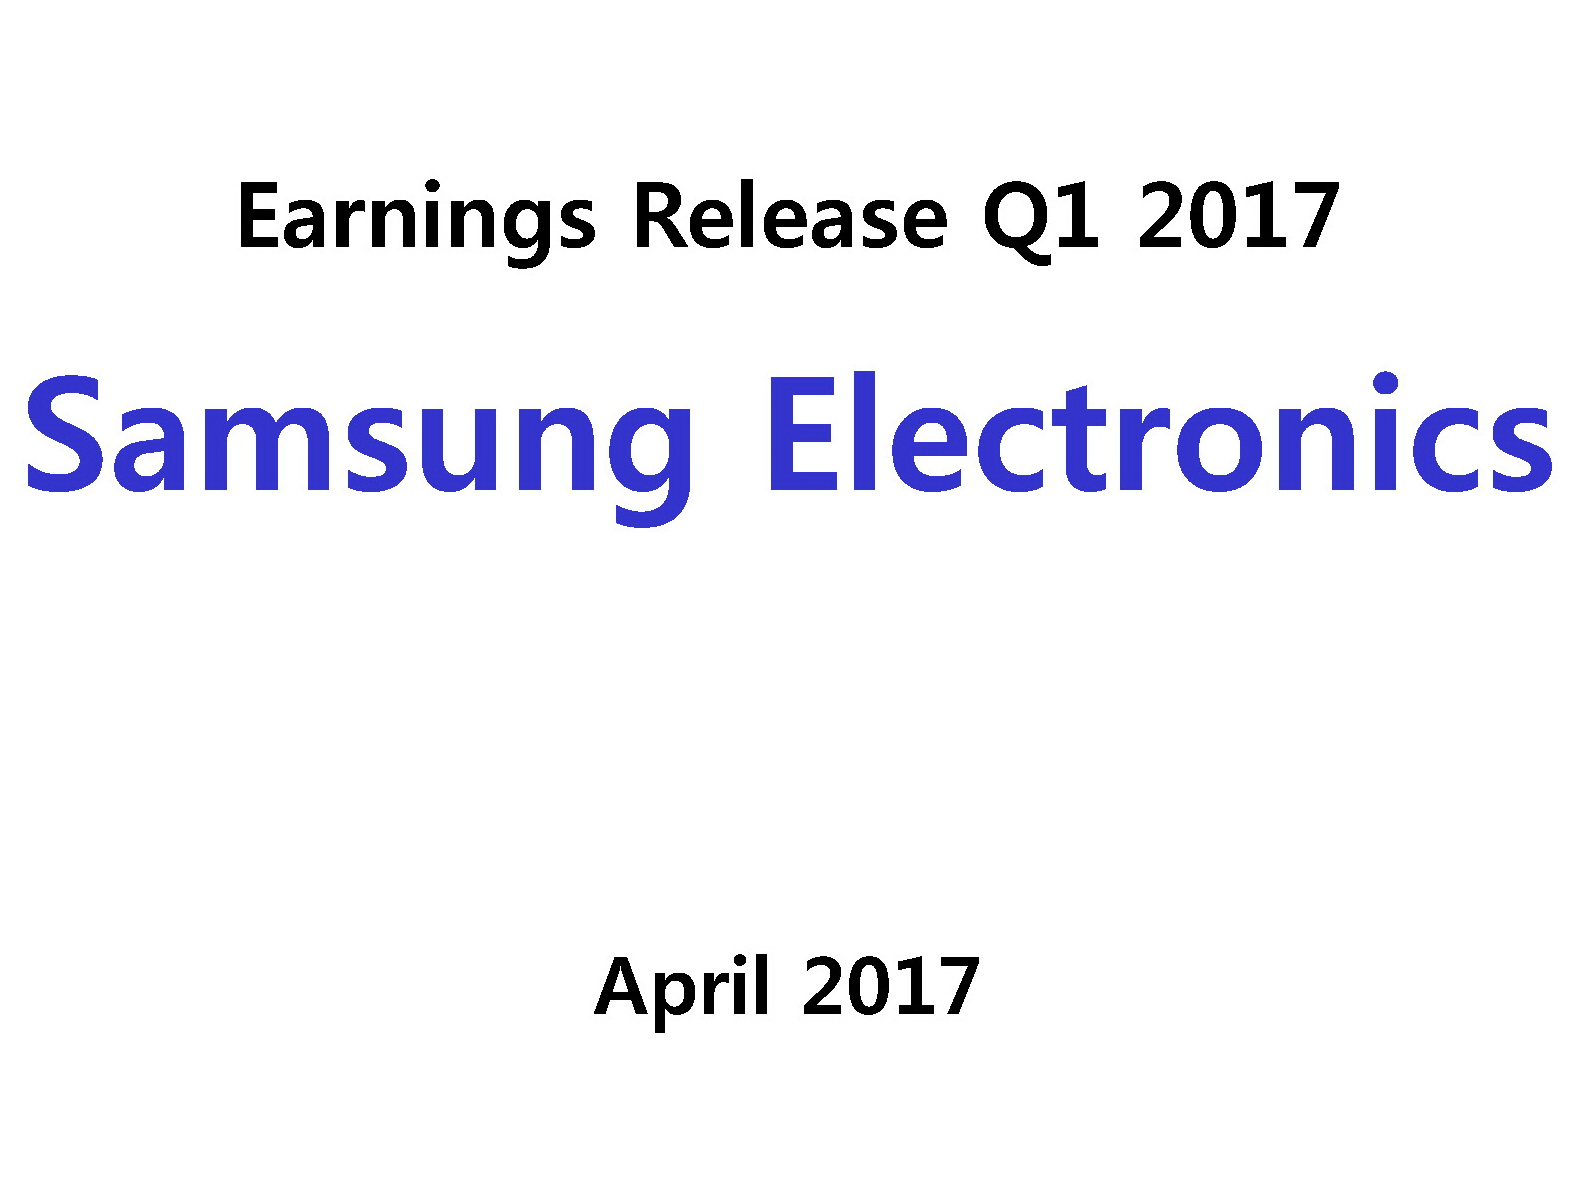 samsung electronics 3 essay Continue for 3 more pages » • join now to read essay samsung electronics and other term papers or research documents.